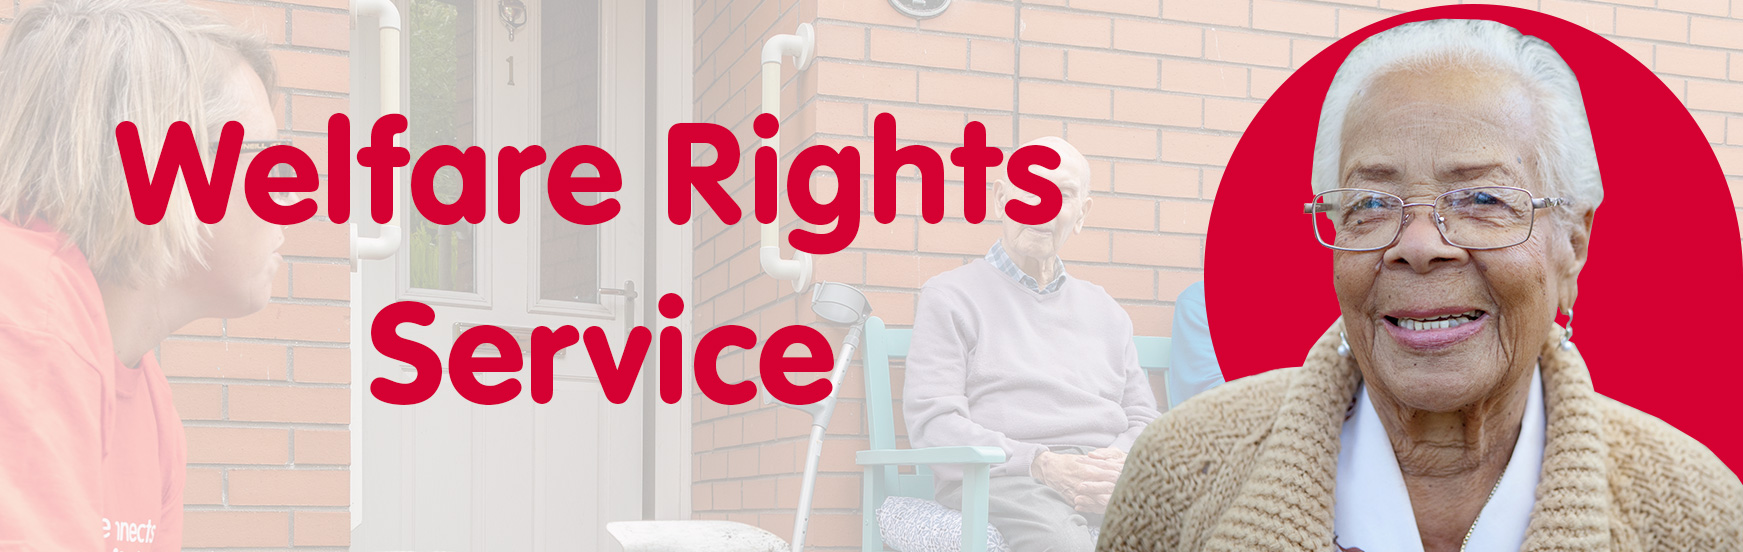 age connects welfare rights service